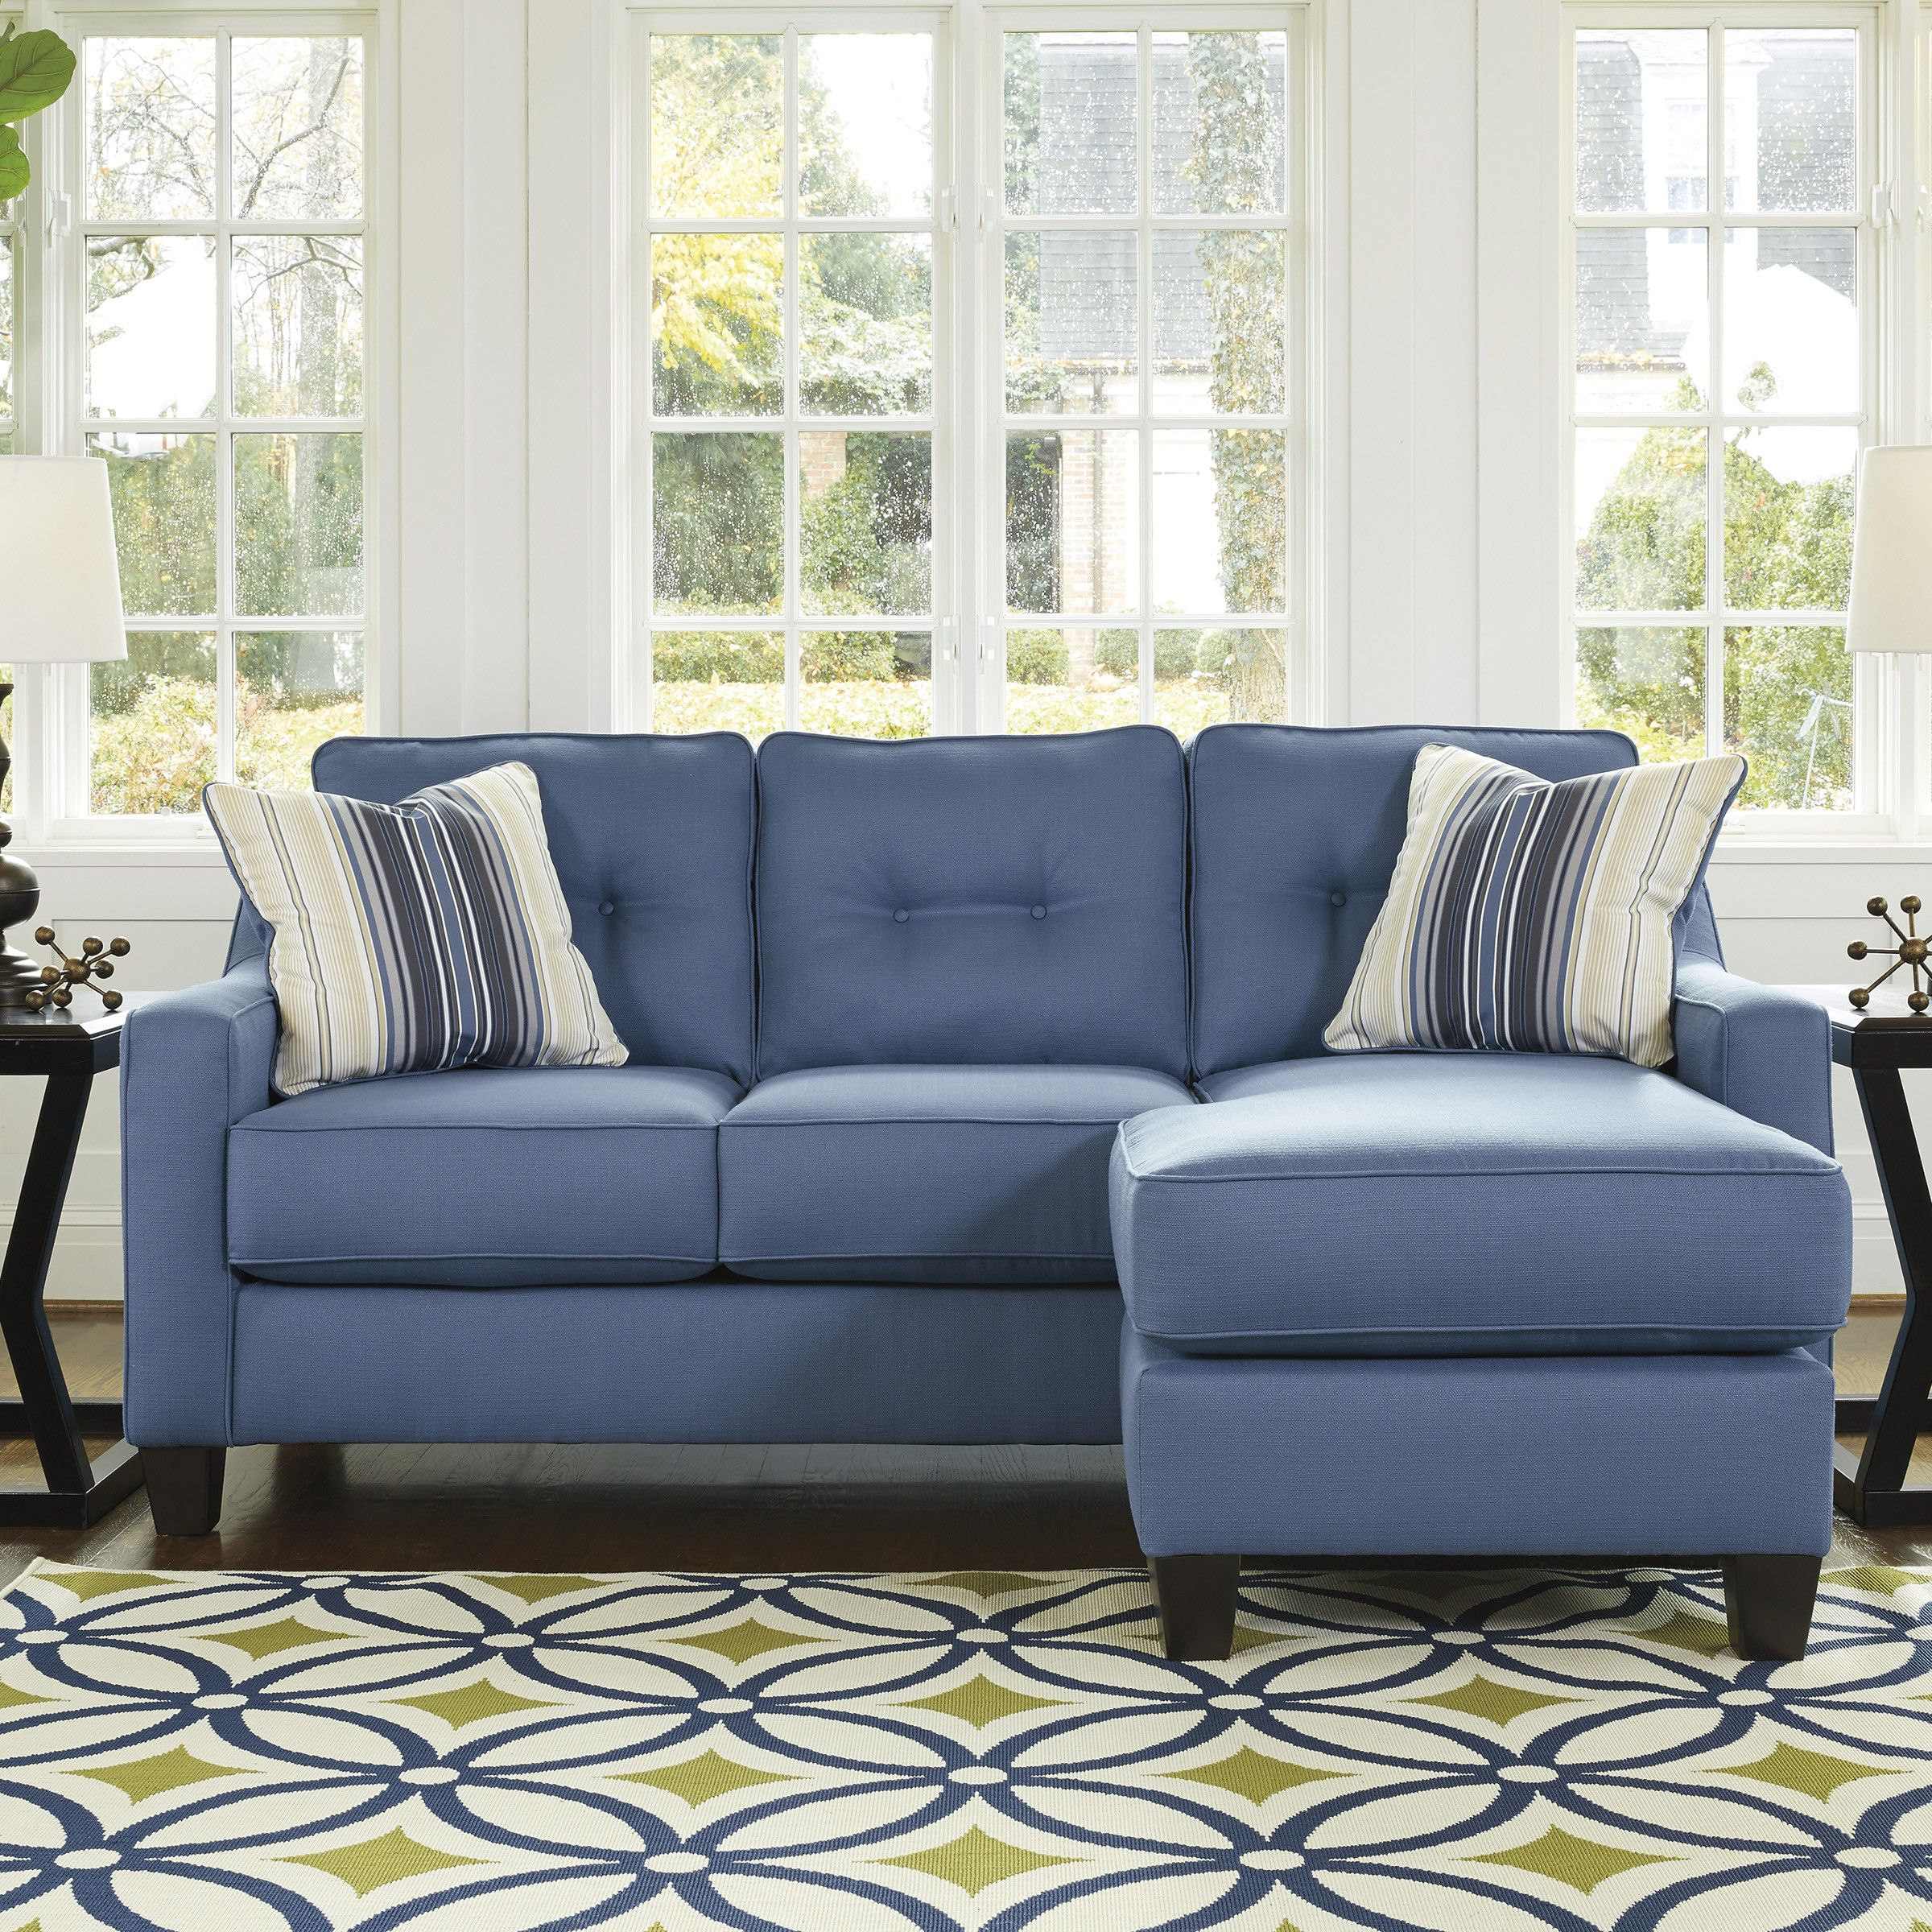 Benchcraft Al Reversible Chaise Sectional You ll Love